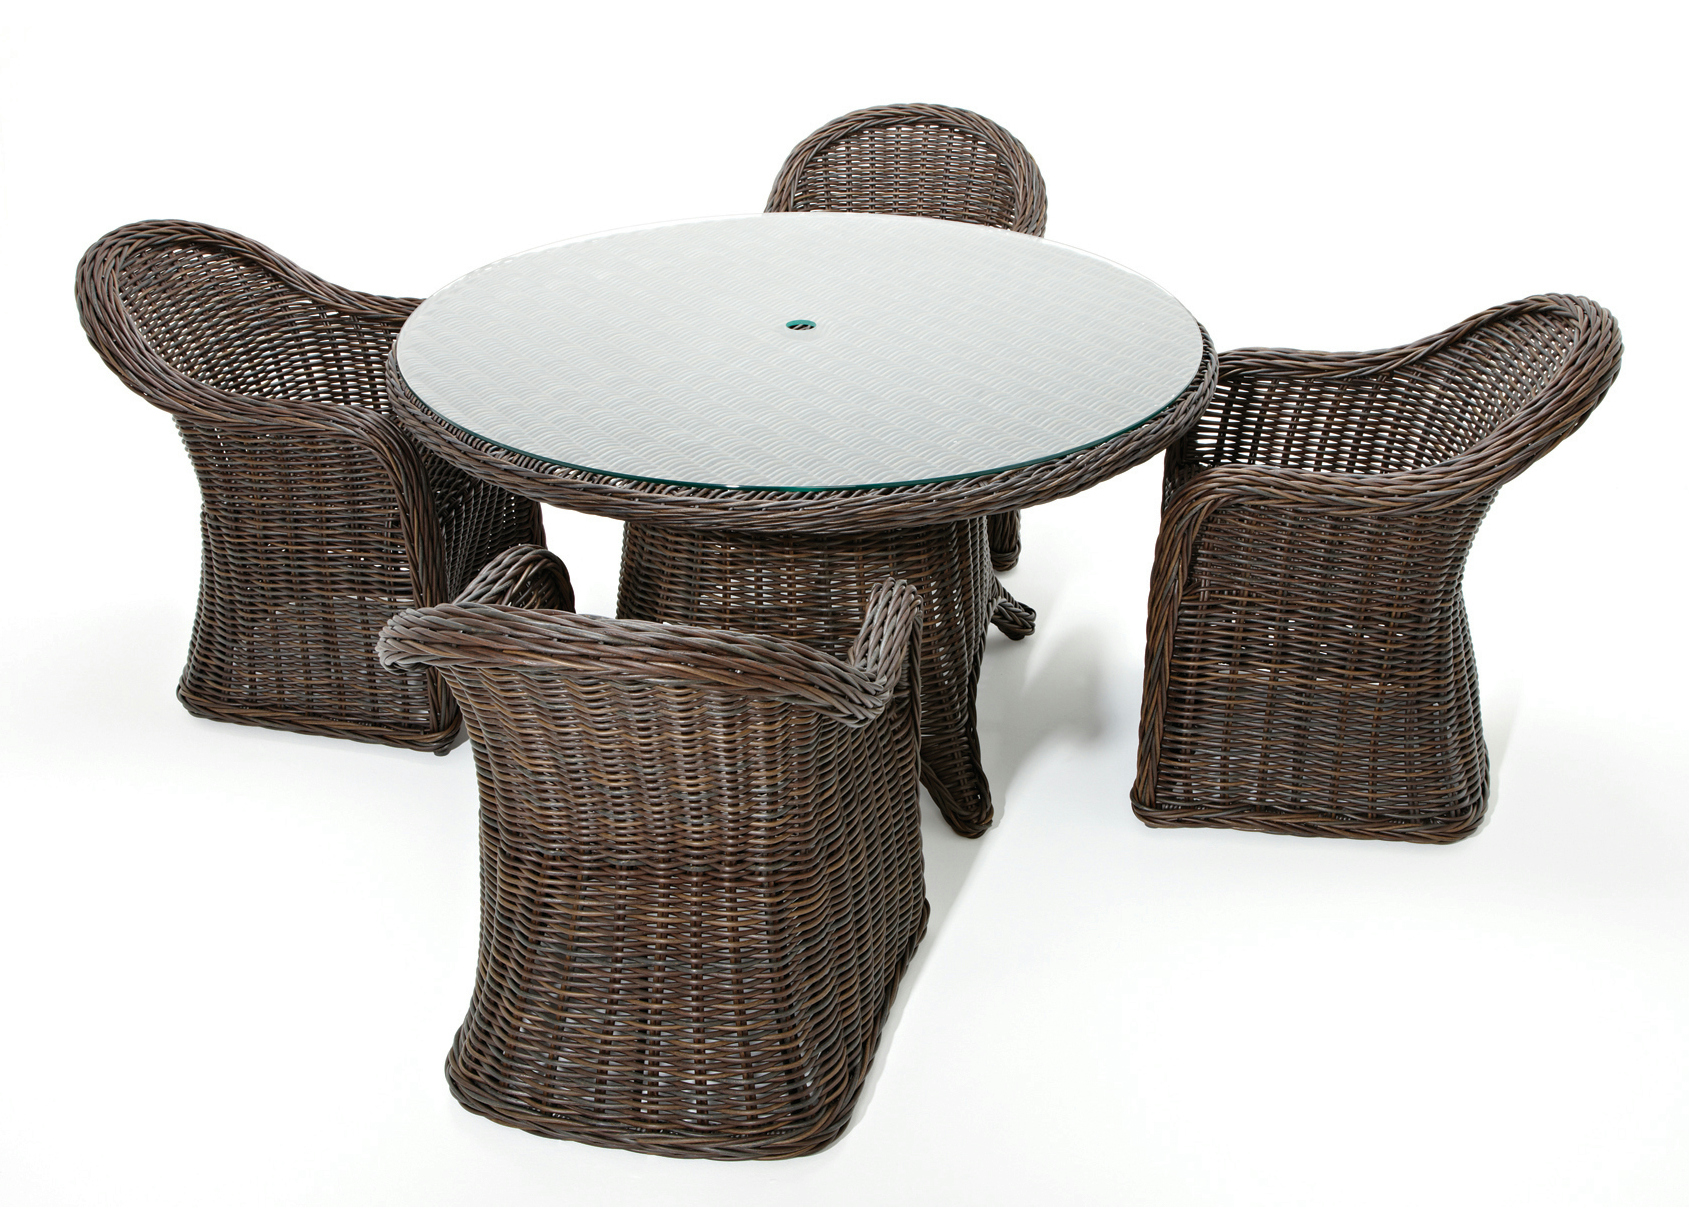 Havana table de jardin ronde by gloster design povl eskildsen for Table de jardin ronde en resine blanche